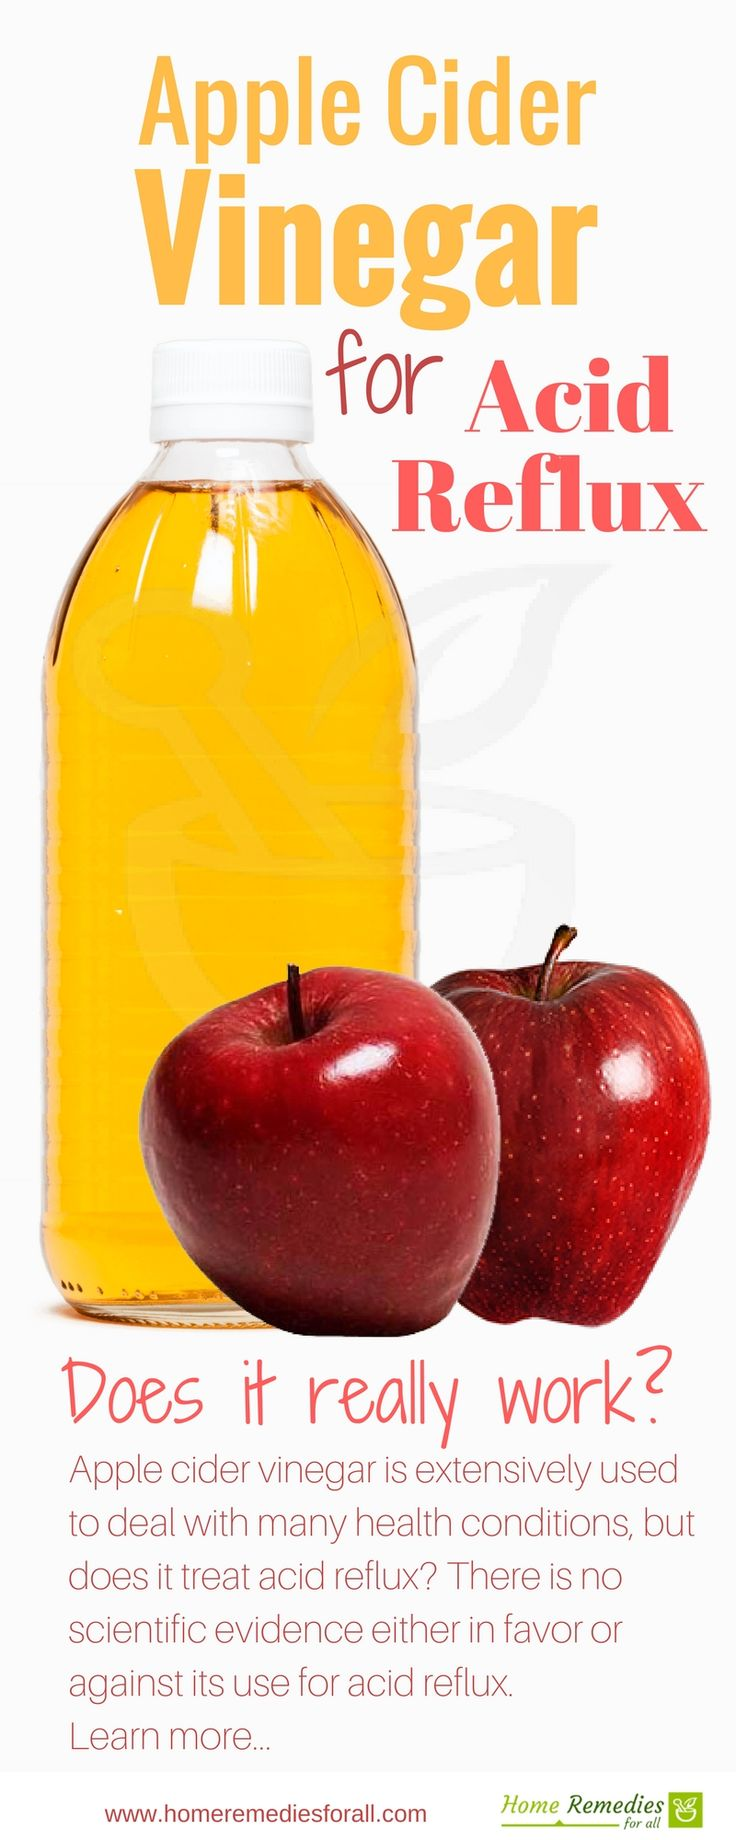 Use apple cider vinegar for acid reflux. It is a very good home remedy that effectively stops heartburn almost immediately.